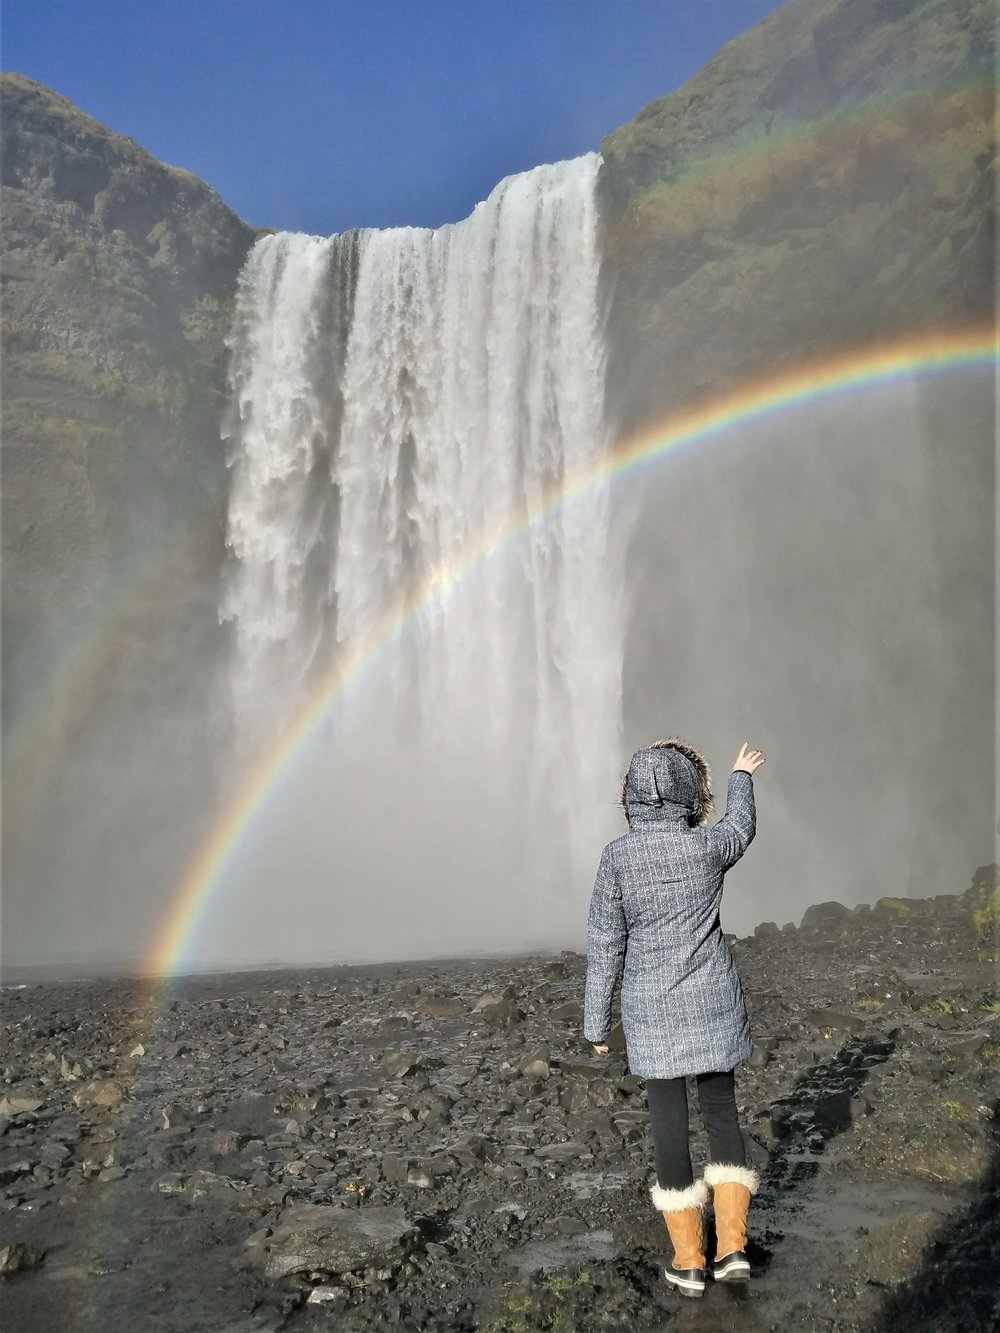 Iceland   Iceland travel   Europe travel   See in Iceland   Do in Iceland   Iceland tips   Iceland sites   Iceland waterfalls   Iceland guide   Waterfalls   Skogafoss